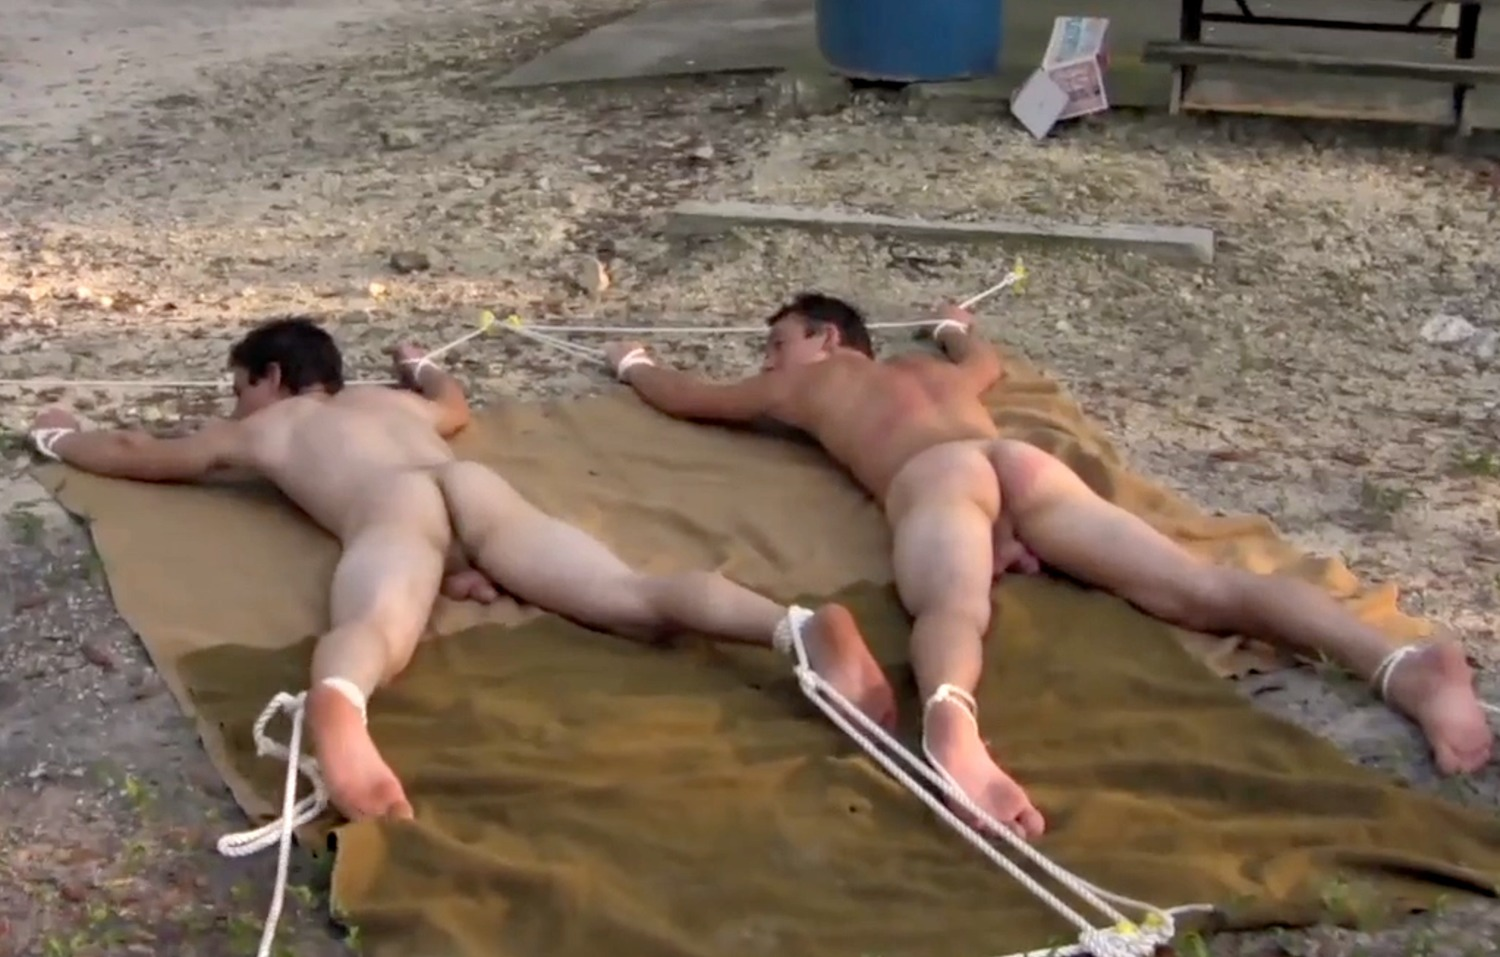 Straight Boys Whipped & Jerked Off With Girlfriend Watching